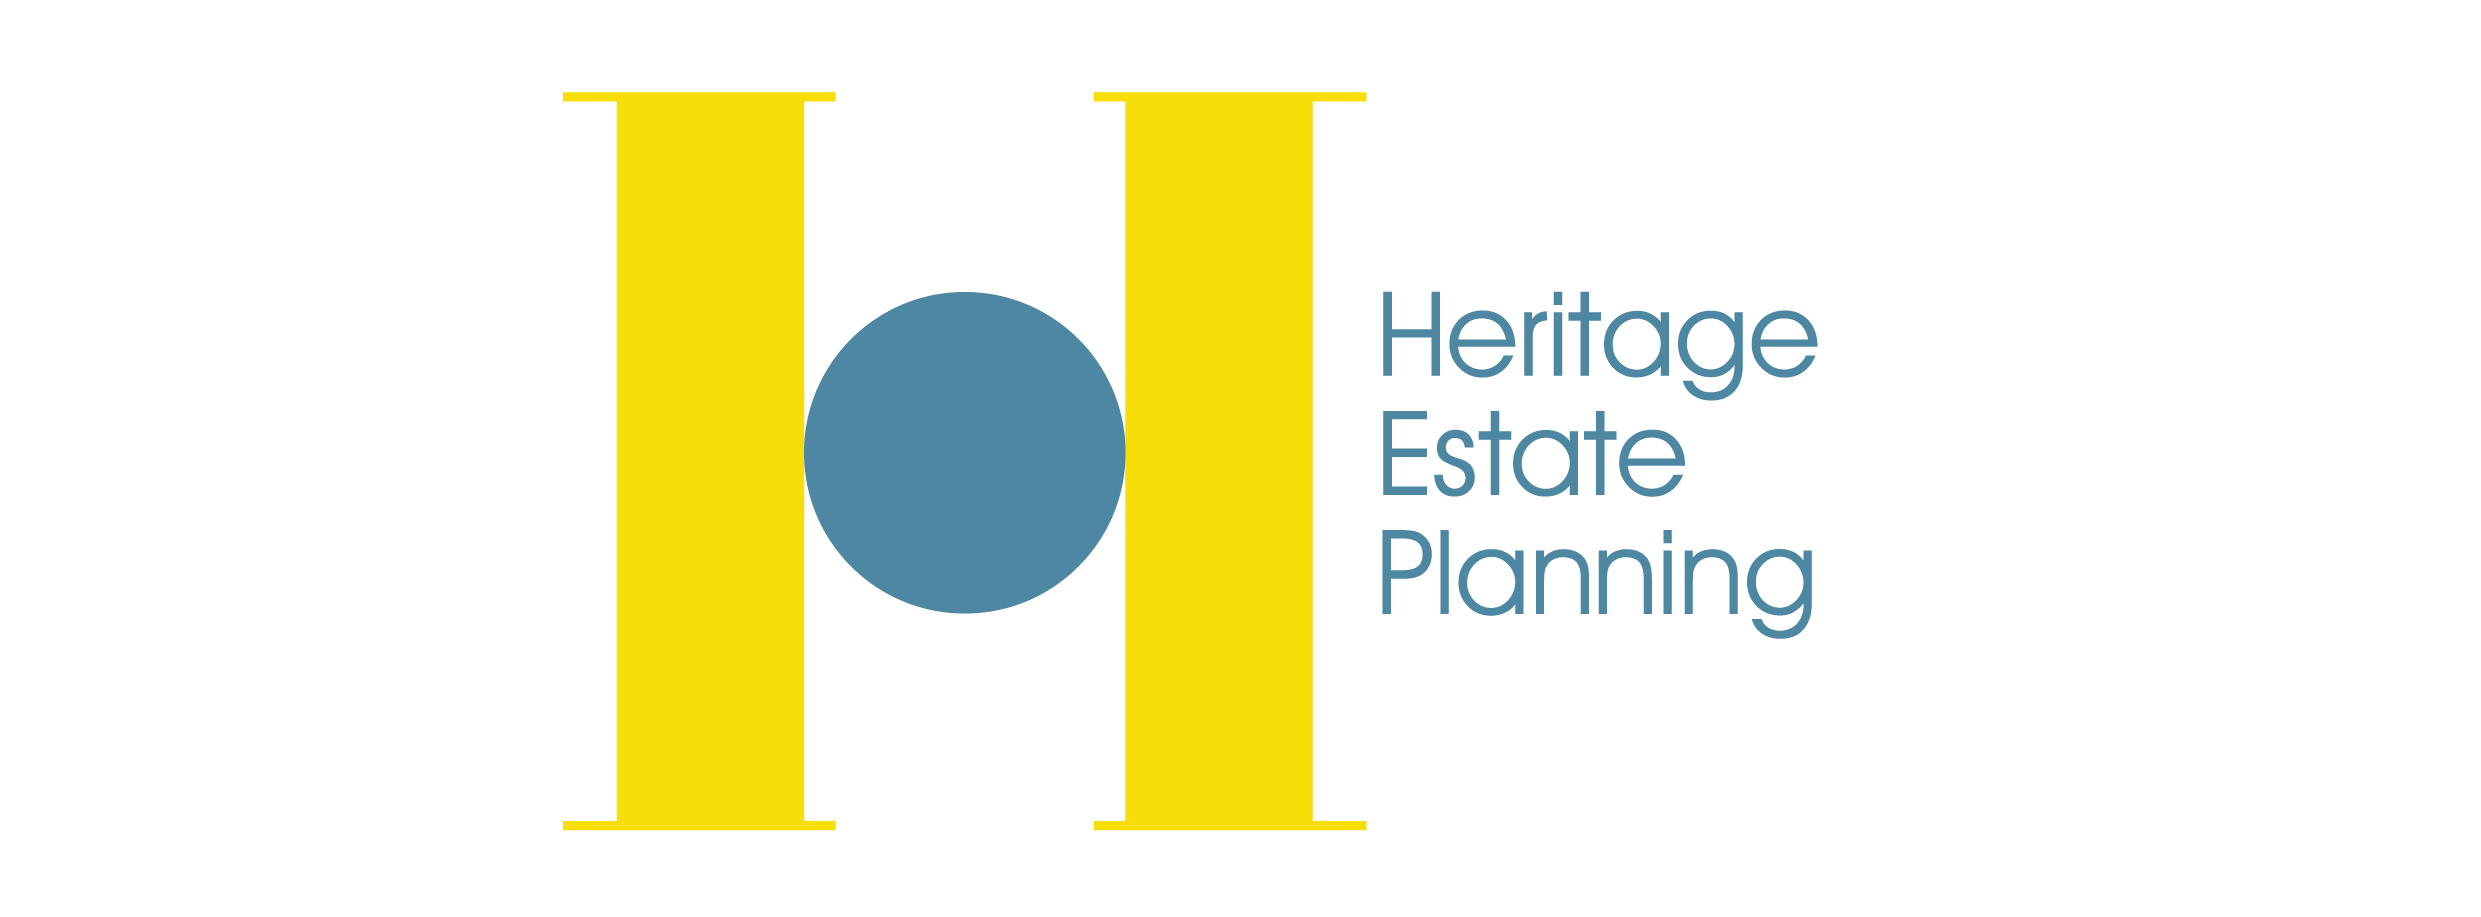 Heritage Estate Planning logo